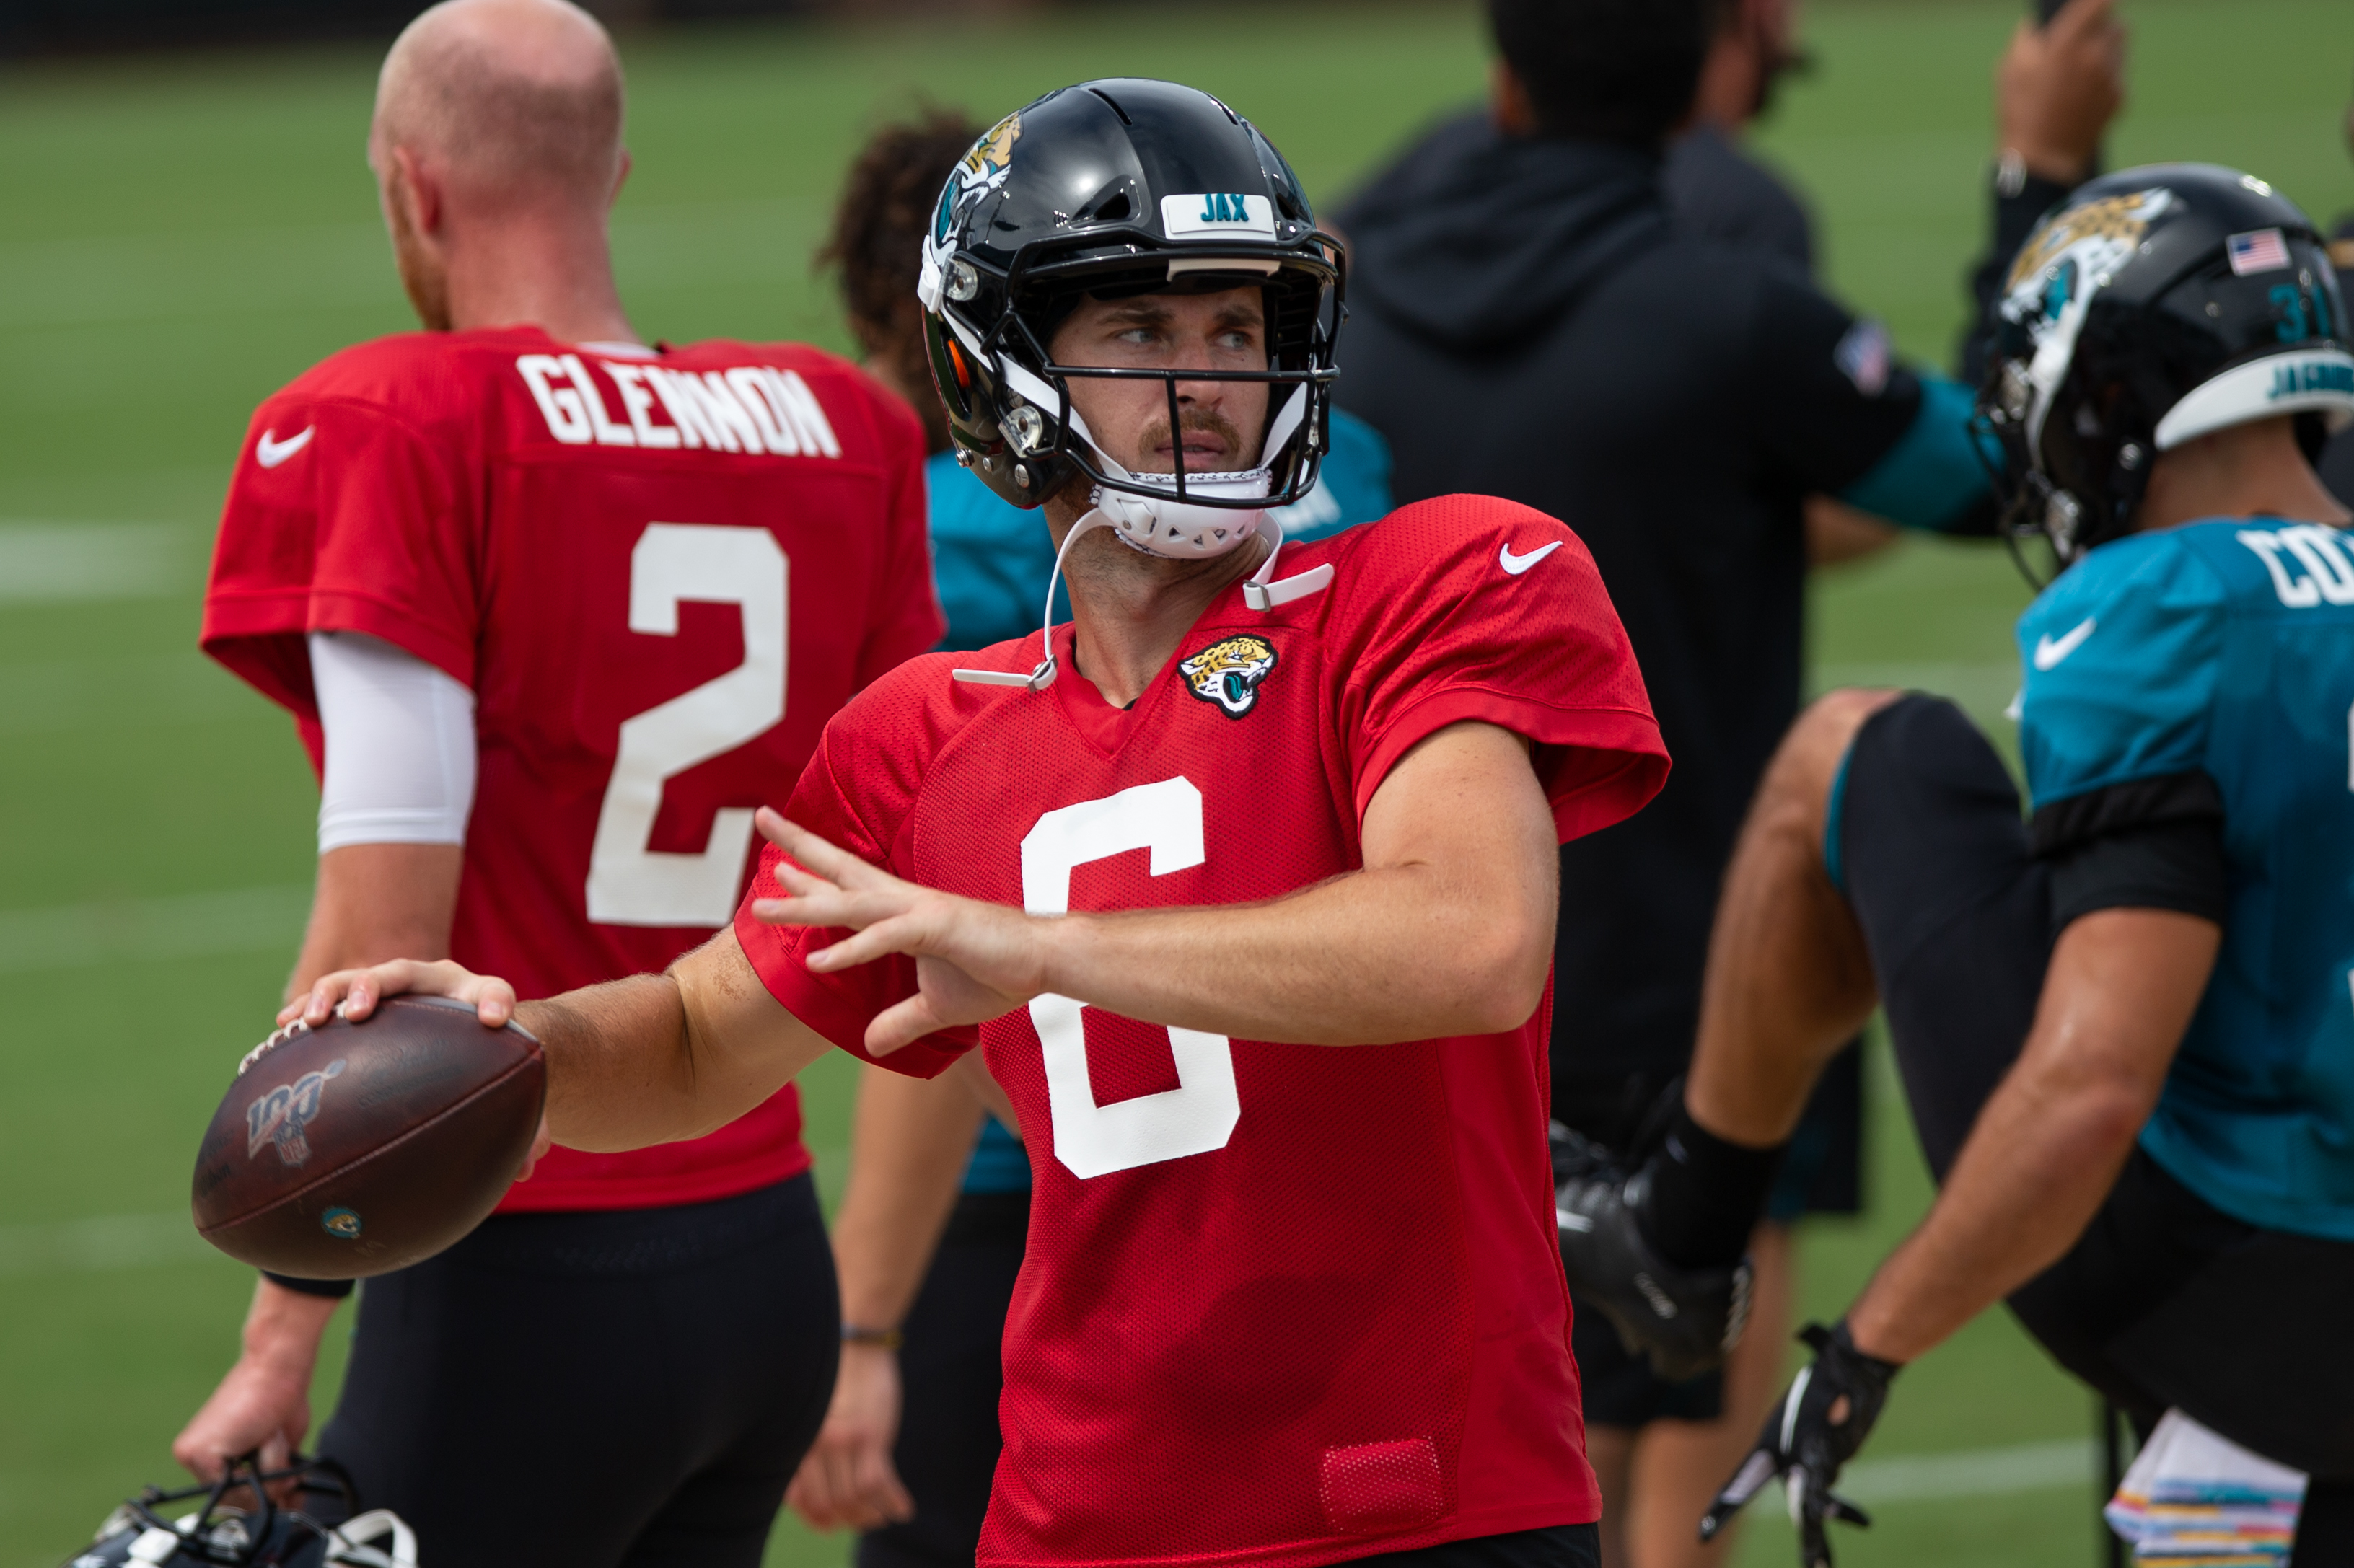 Jake Luton, a rookie quarterback from Oregon State, will make his NFL debut in Week 9 for the Jacksonville Jaguars. Here's what you need to know.